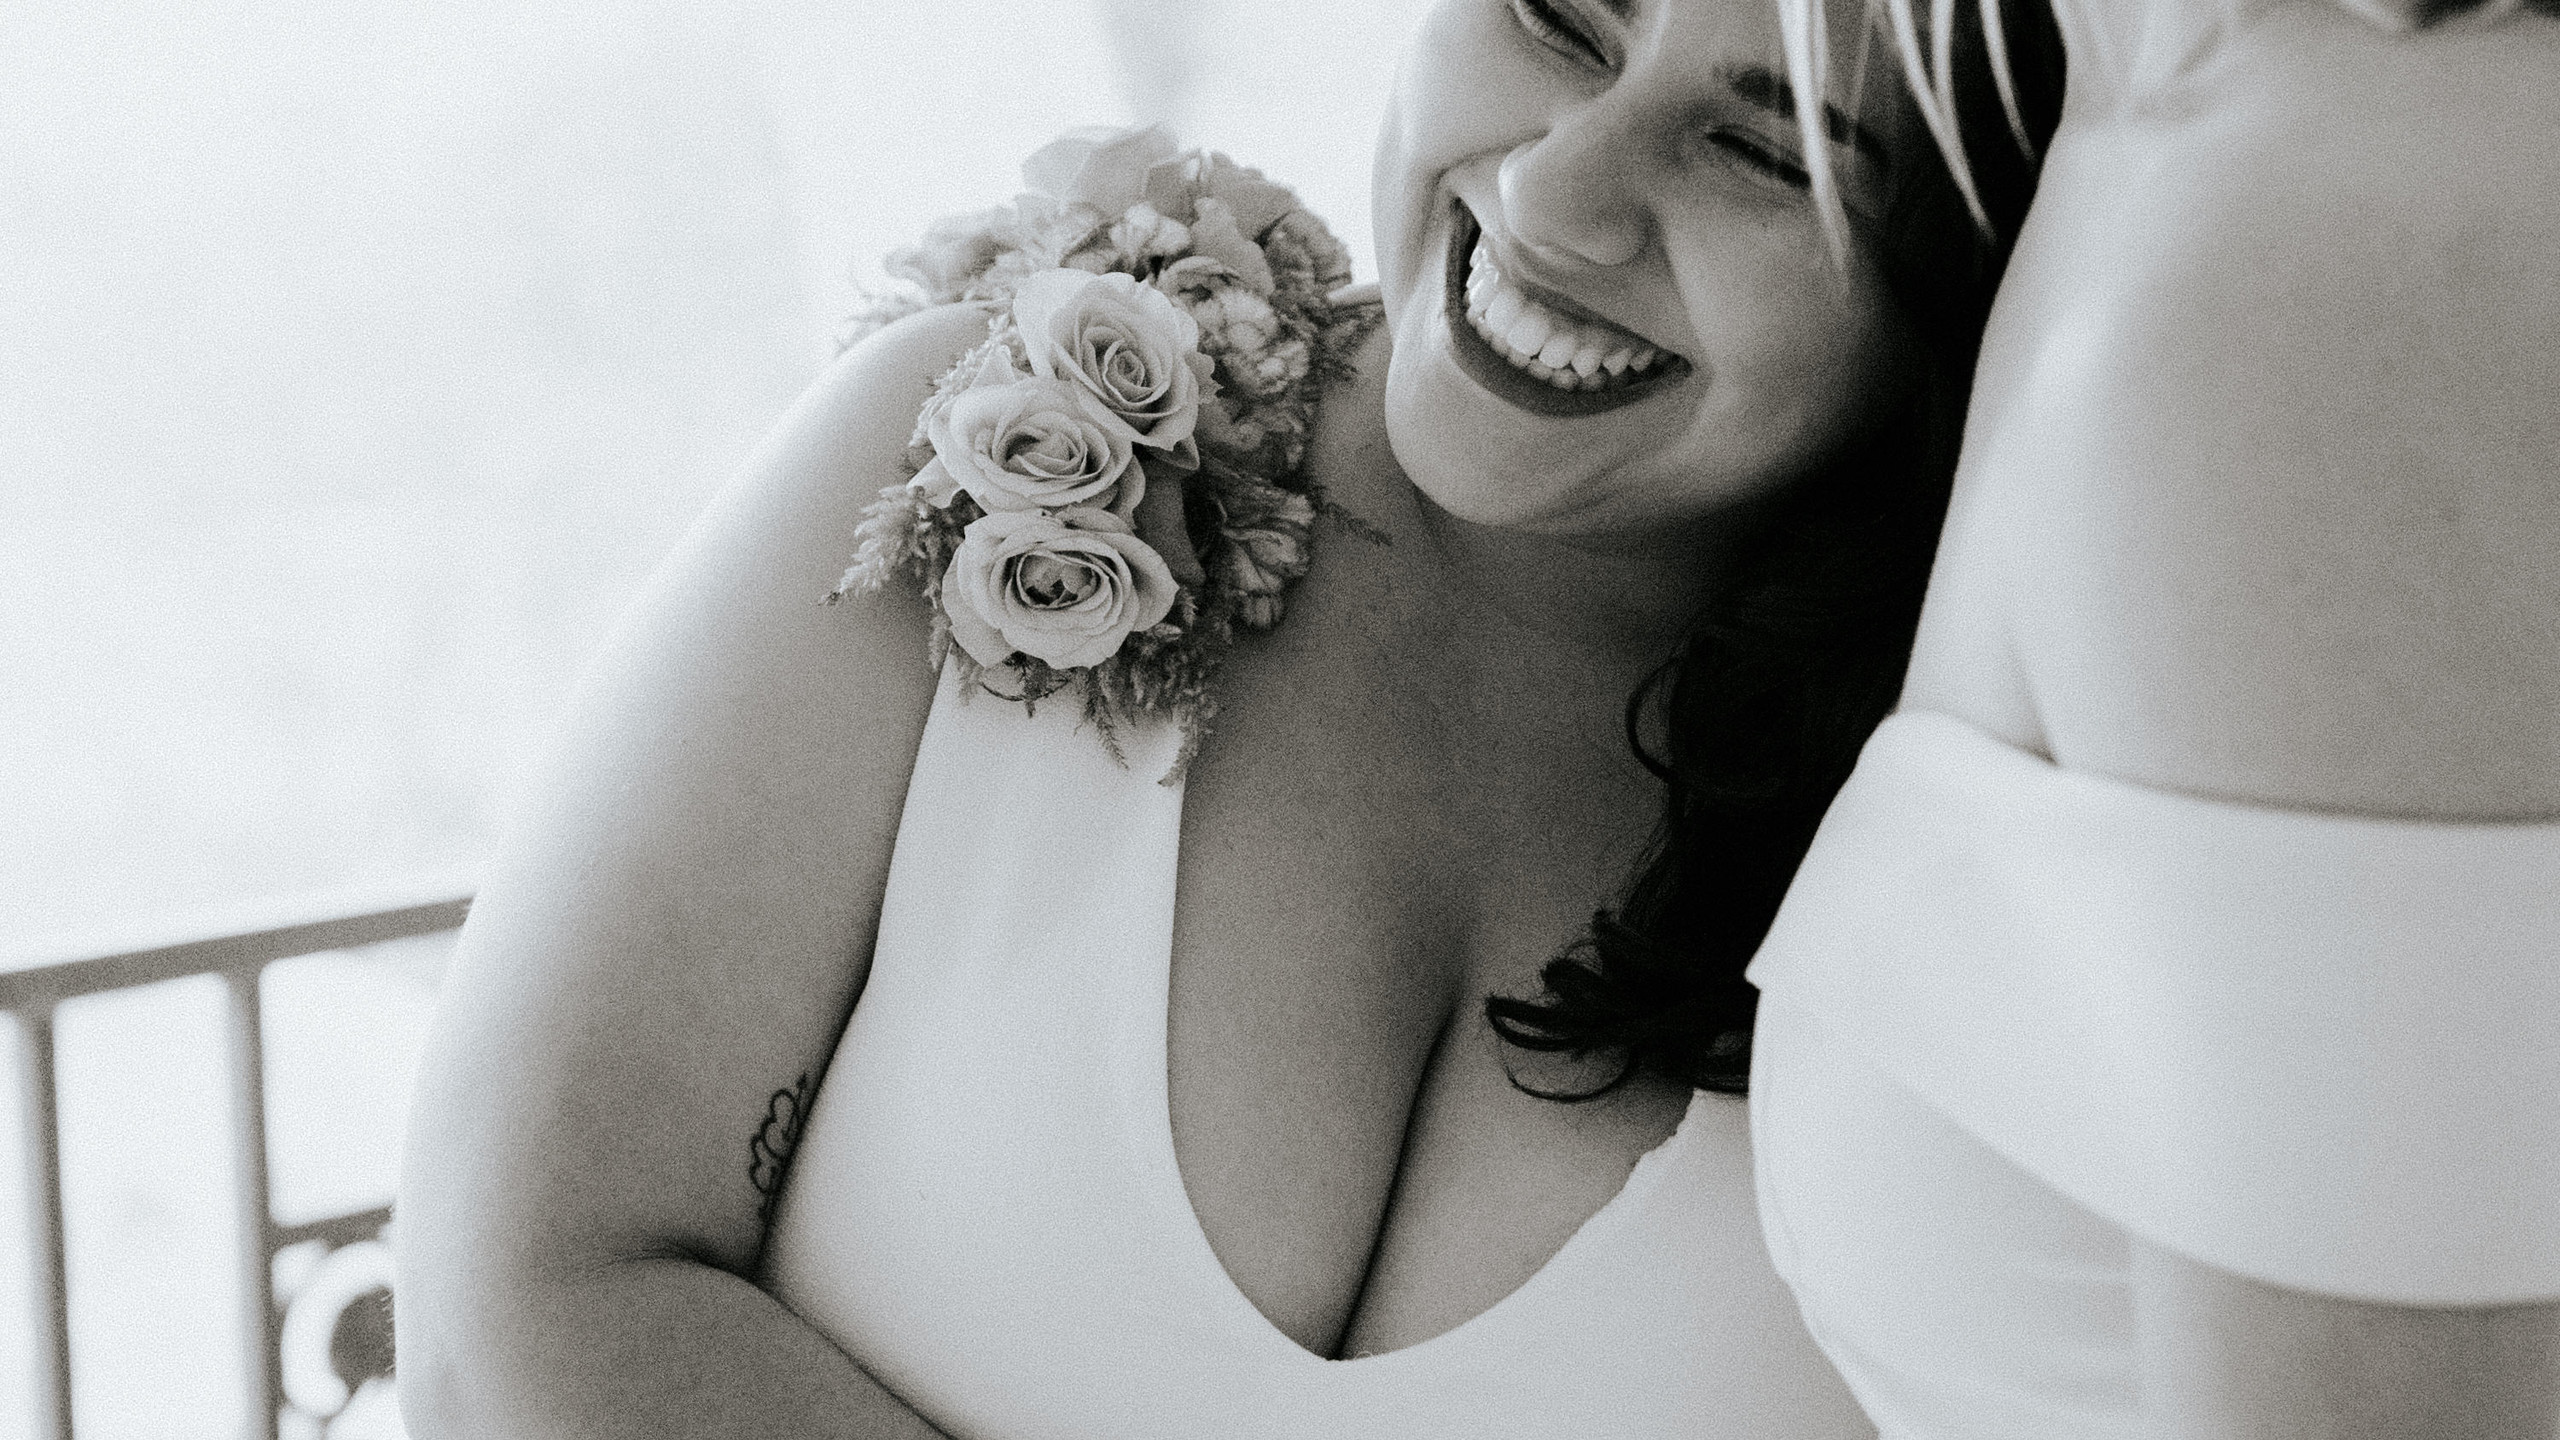 Black and white close-up photo of smiling Latina bride with floral shoulder piece resting her head on her partner's chest